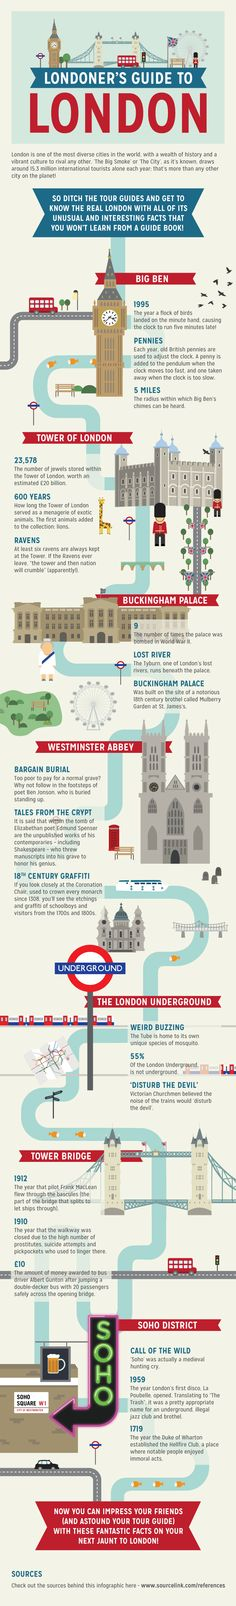 TRAVEL INFOGRAPHIC | Londoner's guide to London Infographic. Check out this cool Tourist Cheat Sheet on Back to Buckley @ http://www.backtobuckley.com/like-a-local-a-tourist-cheat-sheet-for-london/